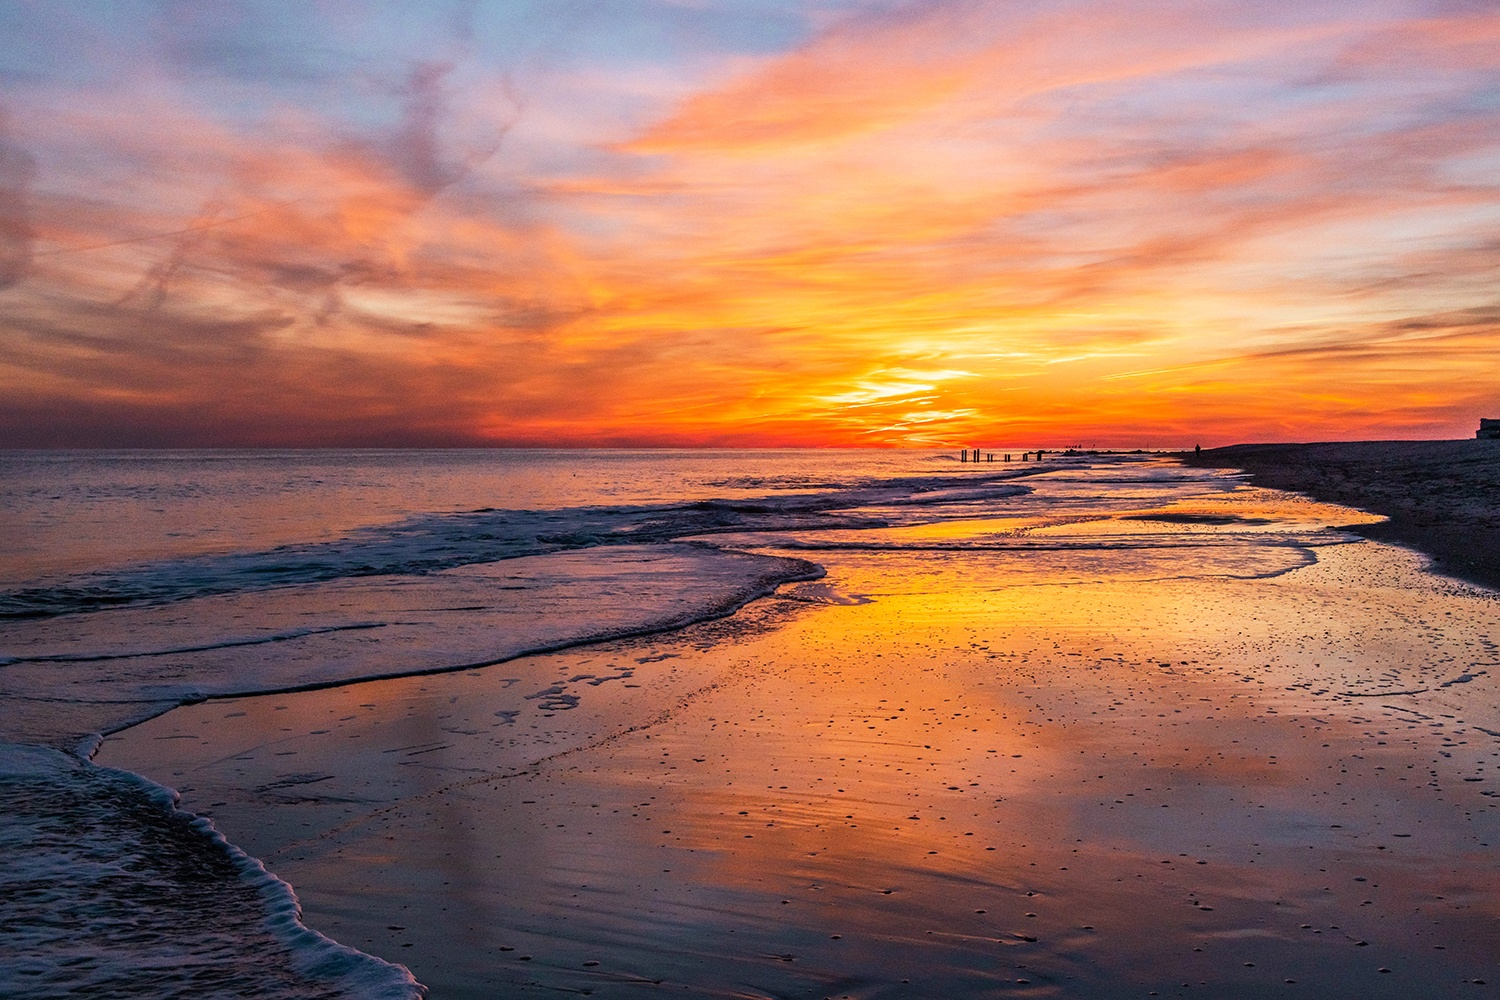 Pink, orange, and red clouds in the sky at sunset reflected in the sand